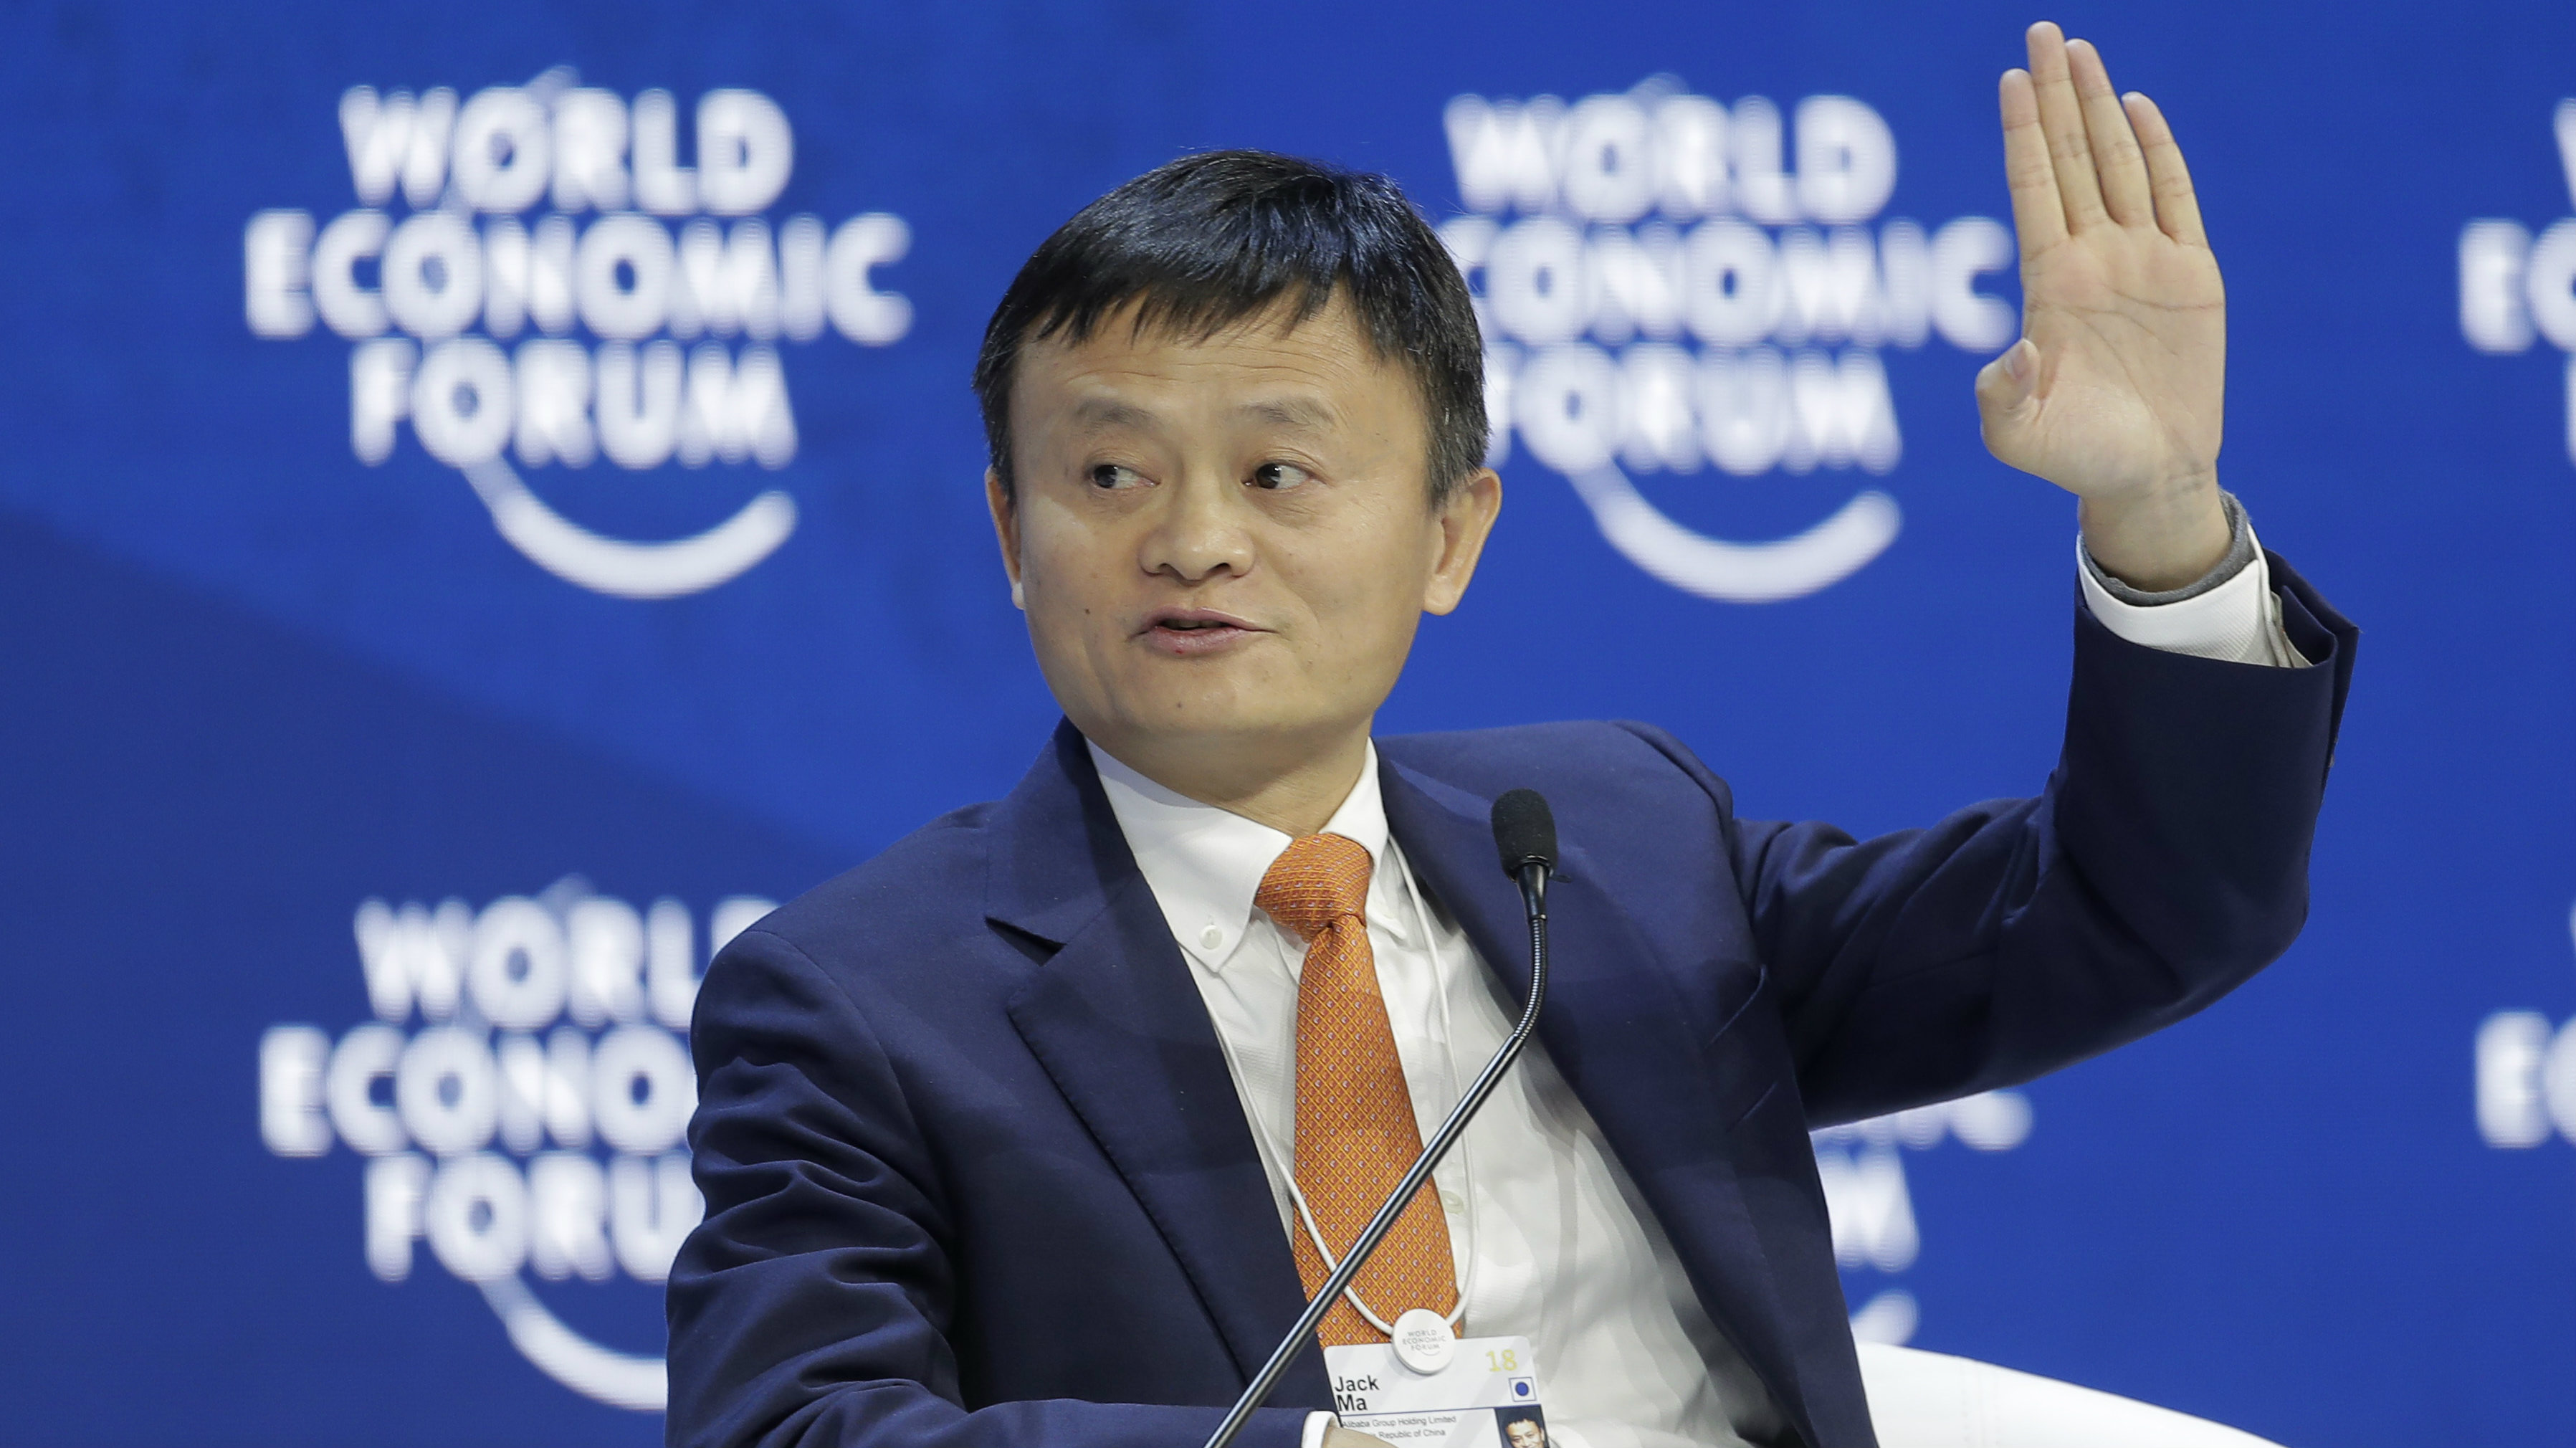 Alibaba founder Jack Ma speaks during the annual meeting of the World Economic Forum in Davos, Switzerland